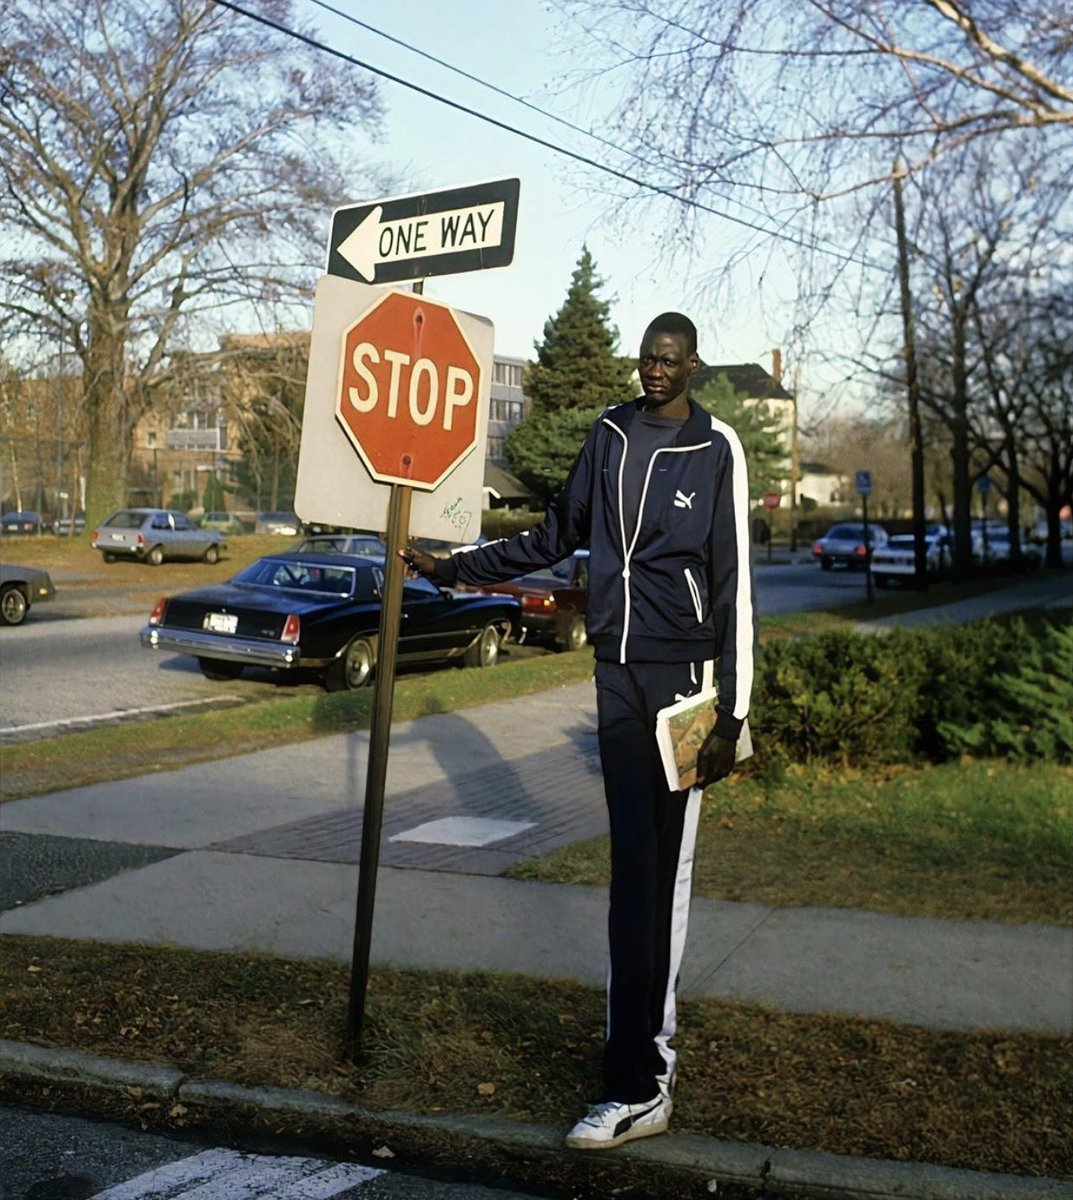 Manute Bol standing next to a stop sign in 1984. 📸